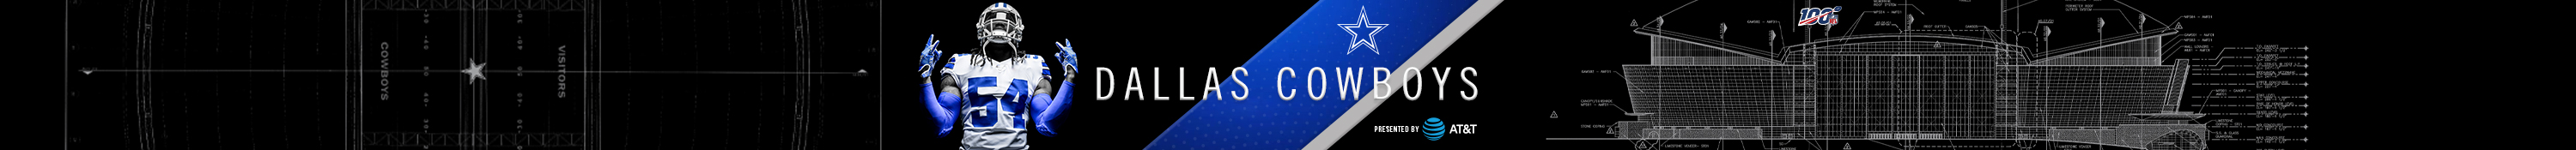 image about Nfl Week 17 Schedule Printable identified as Dallas Cowboys Formal Internet site of the Dallas Cowboys